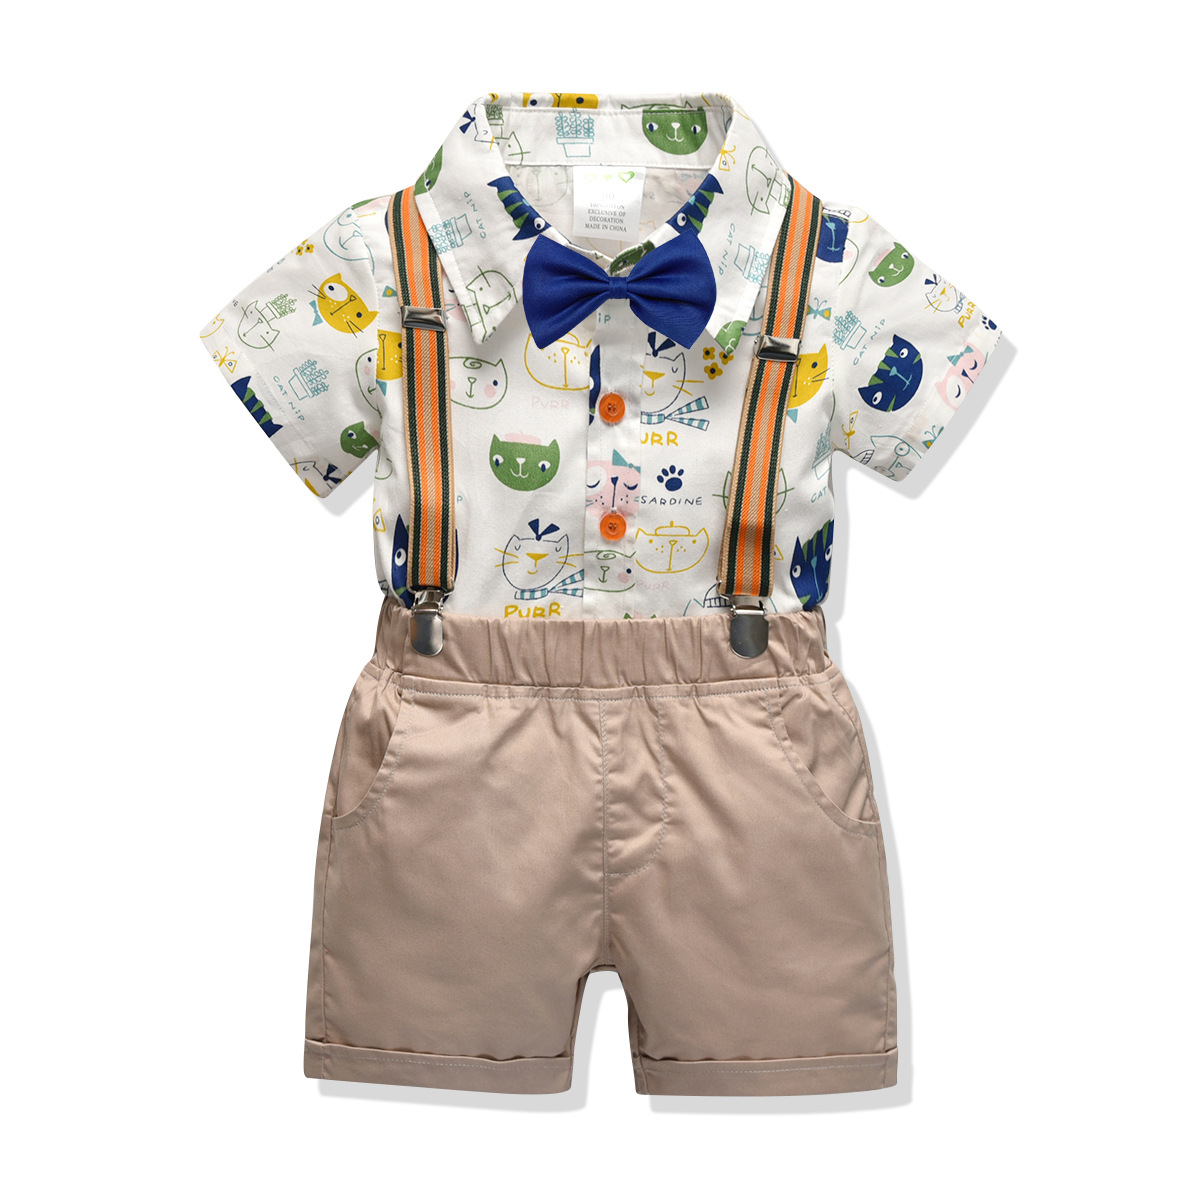 Boys Clothing Set Summer Cartoon Baby Suit Shorts Shirt 2 3 4 6 Year Children Kid Clothes Suits Formal Wedding Party Costume in Clothing Sets from Mother Kids